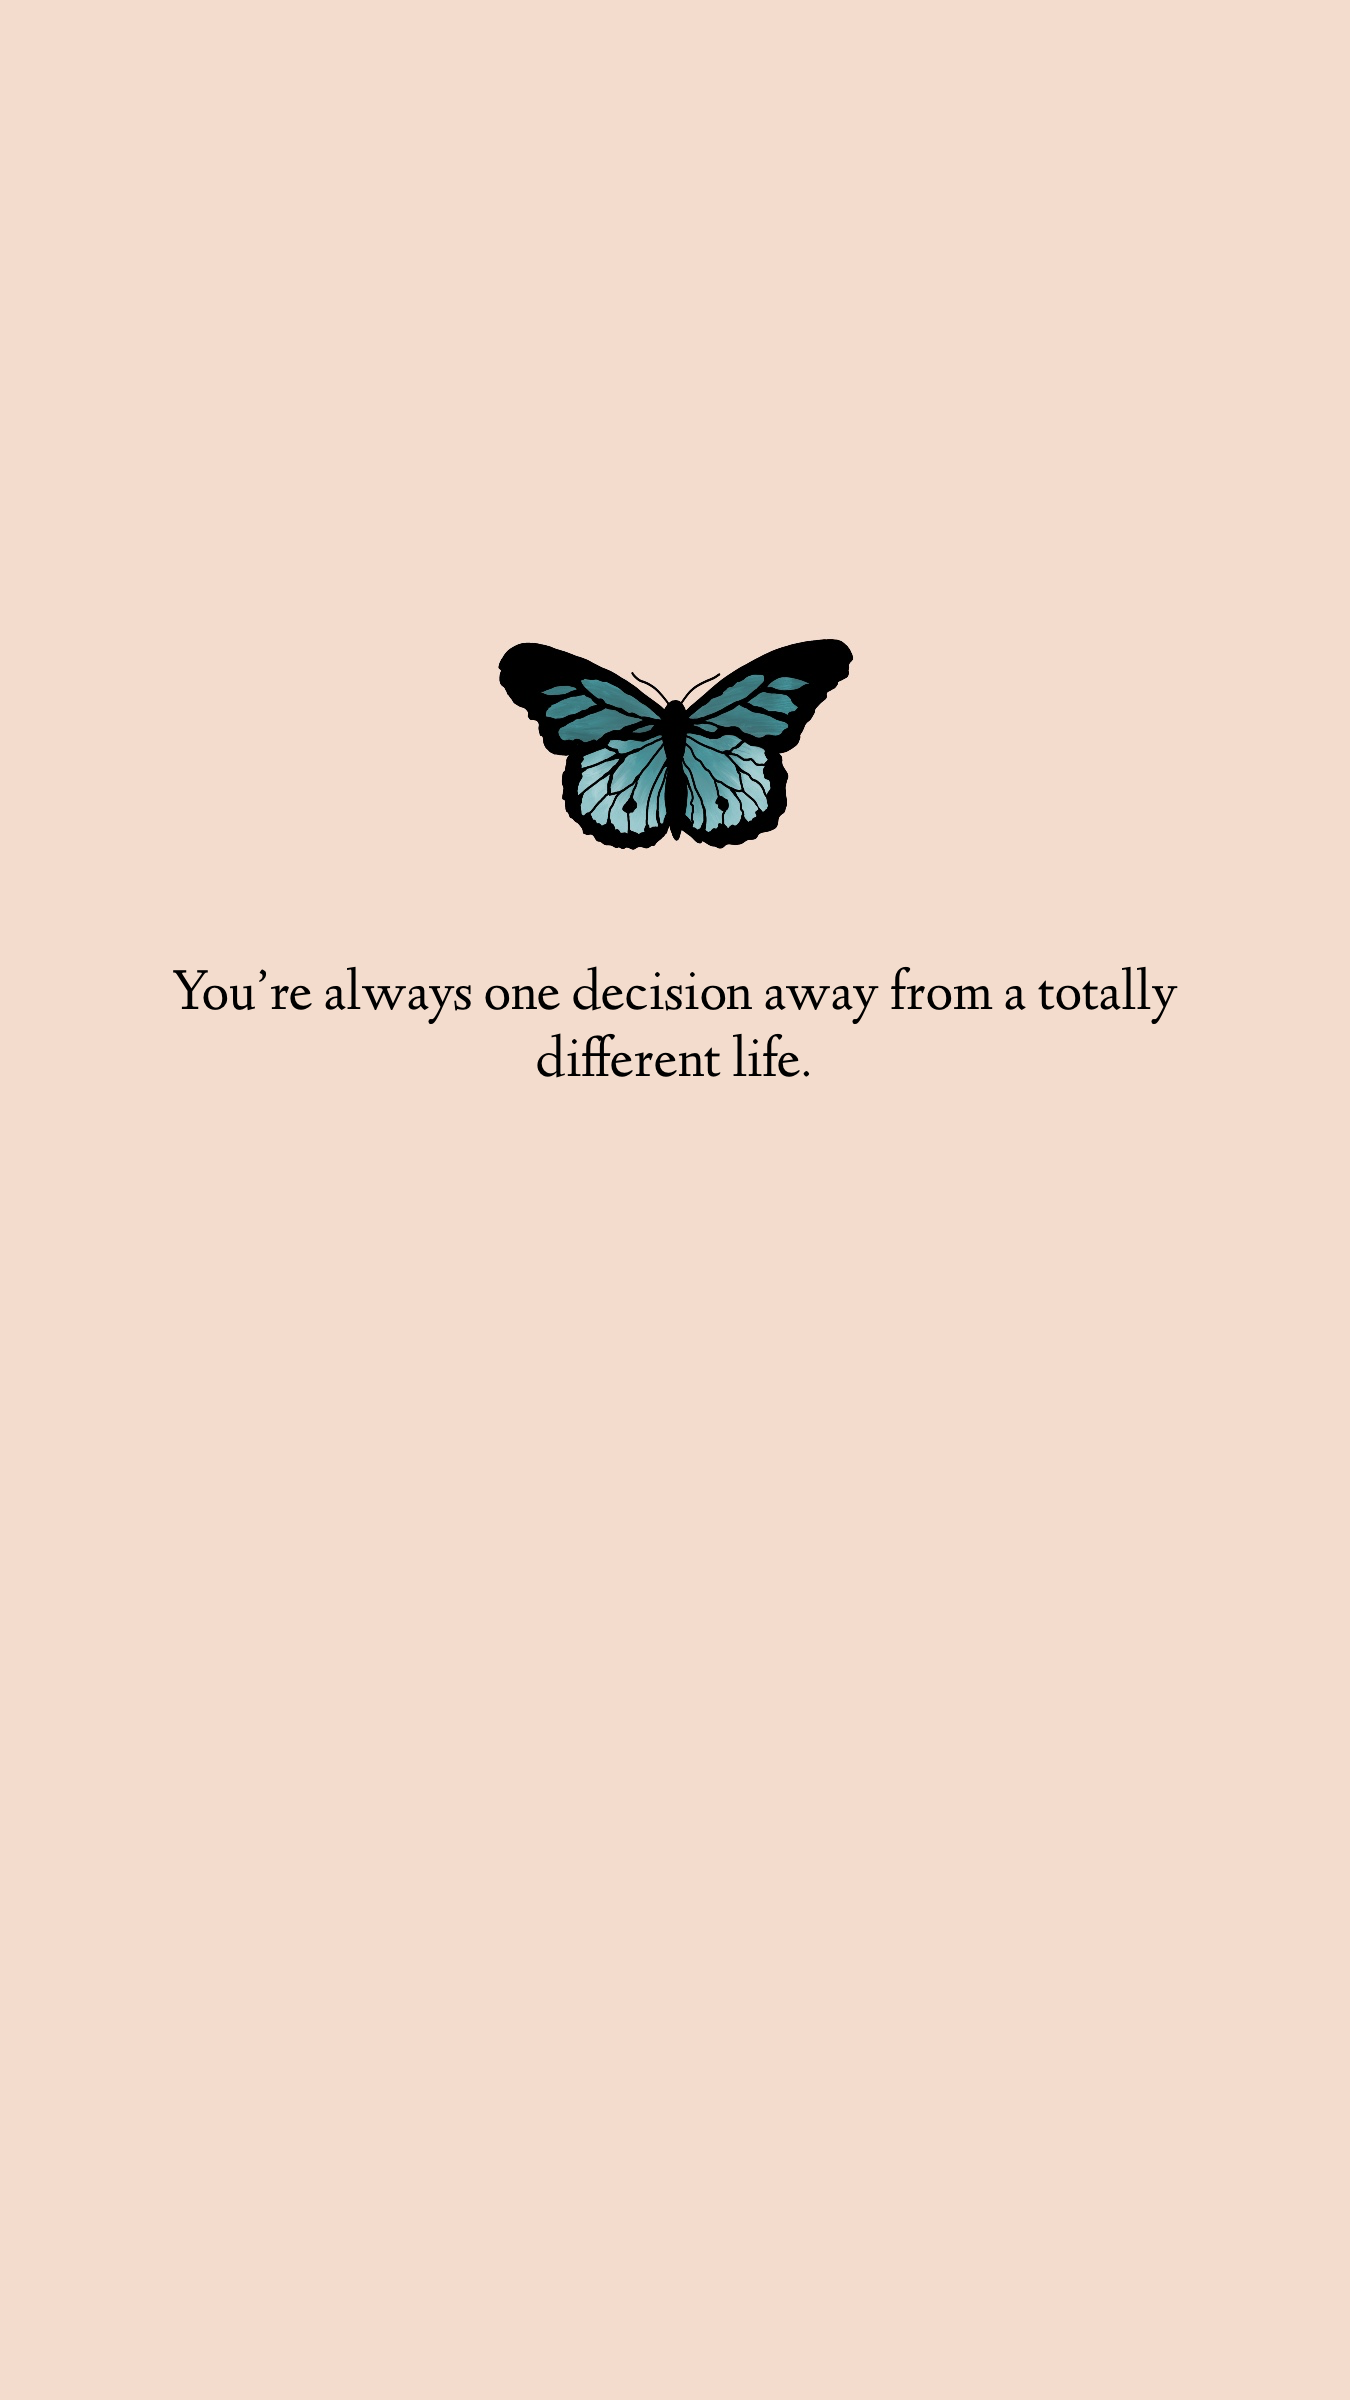 Simple Butterfly Wallpaper Quote Wallpaper Quotes Butterfly Wallpaper Simple Butterfly